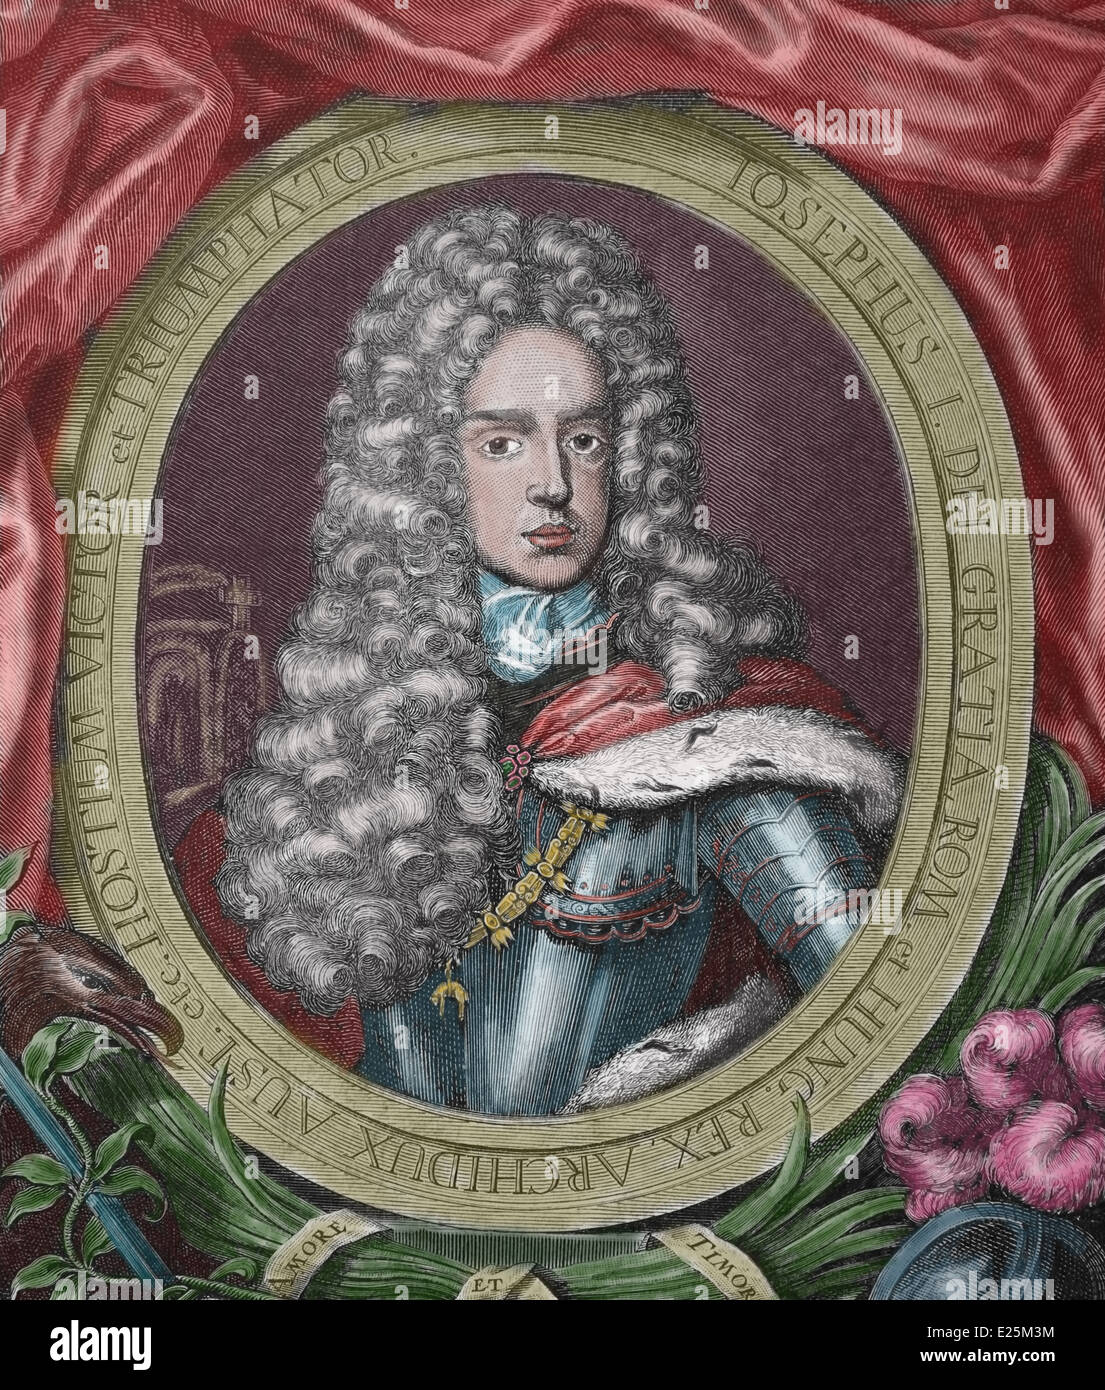 Joseph I (1678-1711). Holy Roman Emperor from 1705-1711. Engraving. 19th century. Later colouration. - Stock Image